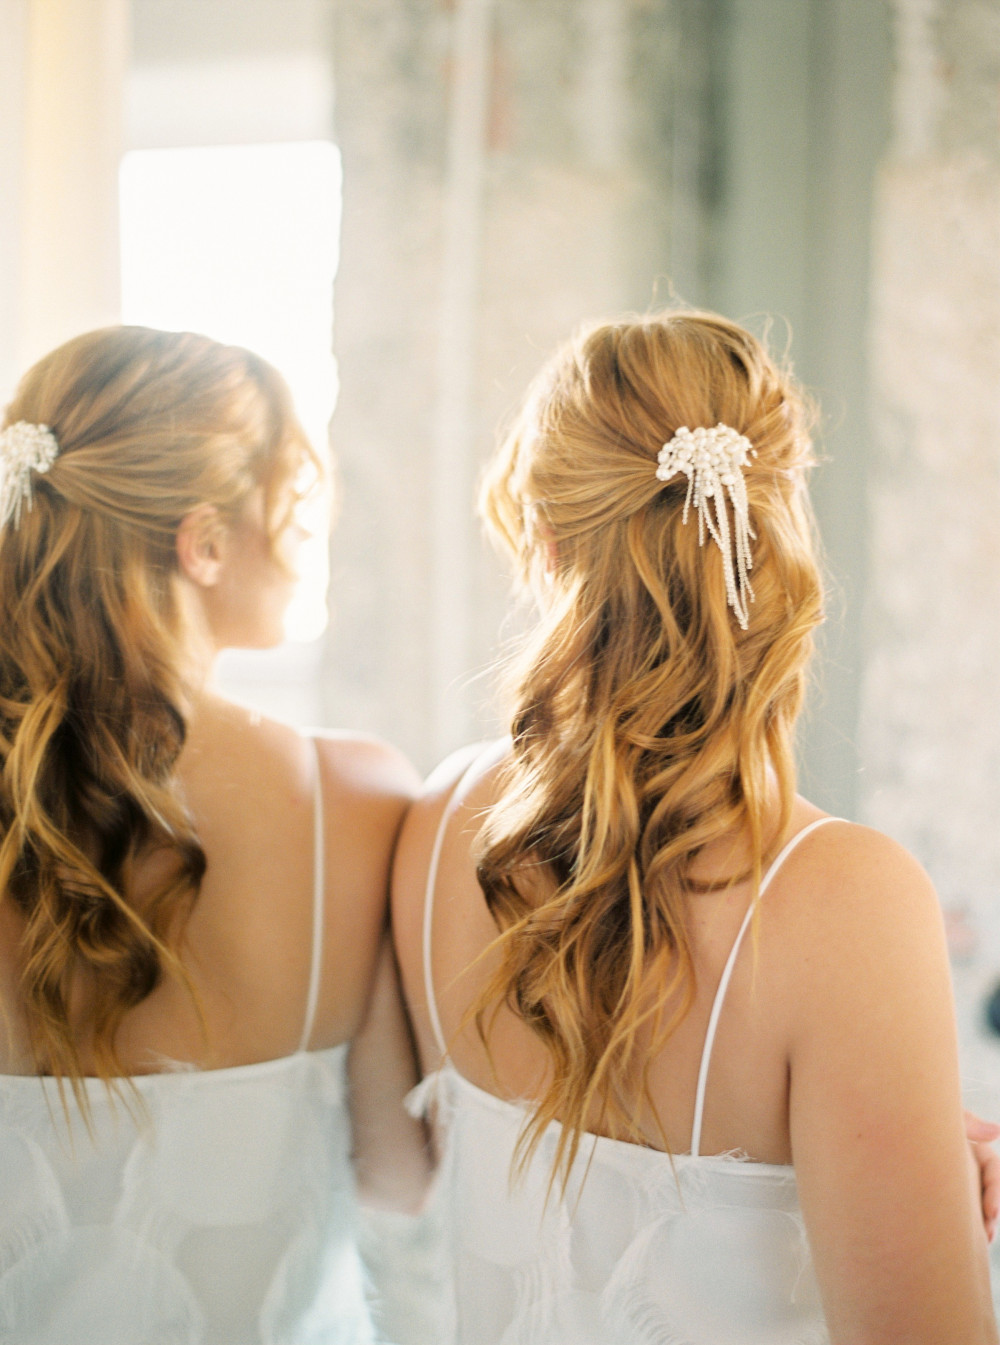 Wedding editorial (hair and hair piece made by me) - Make Me Bridal Artist: let's hair. Photography by: Alice Vicente. #bohemian #classic #halfuphair #elegant #relaxedupdo #hairup #bridalhairstylist #redhair #relaxedhairup #styledshoot #halfuphalfdown #loosewaves #redhair #bridalhair #effortlesshair #loosewaves #glam #loosehair